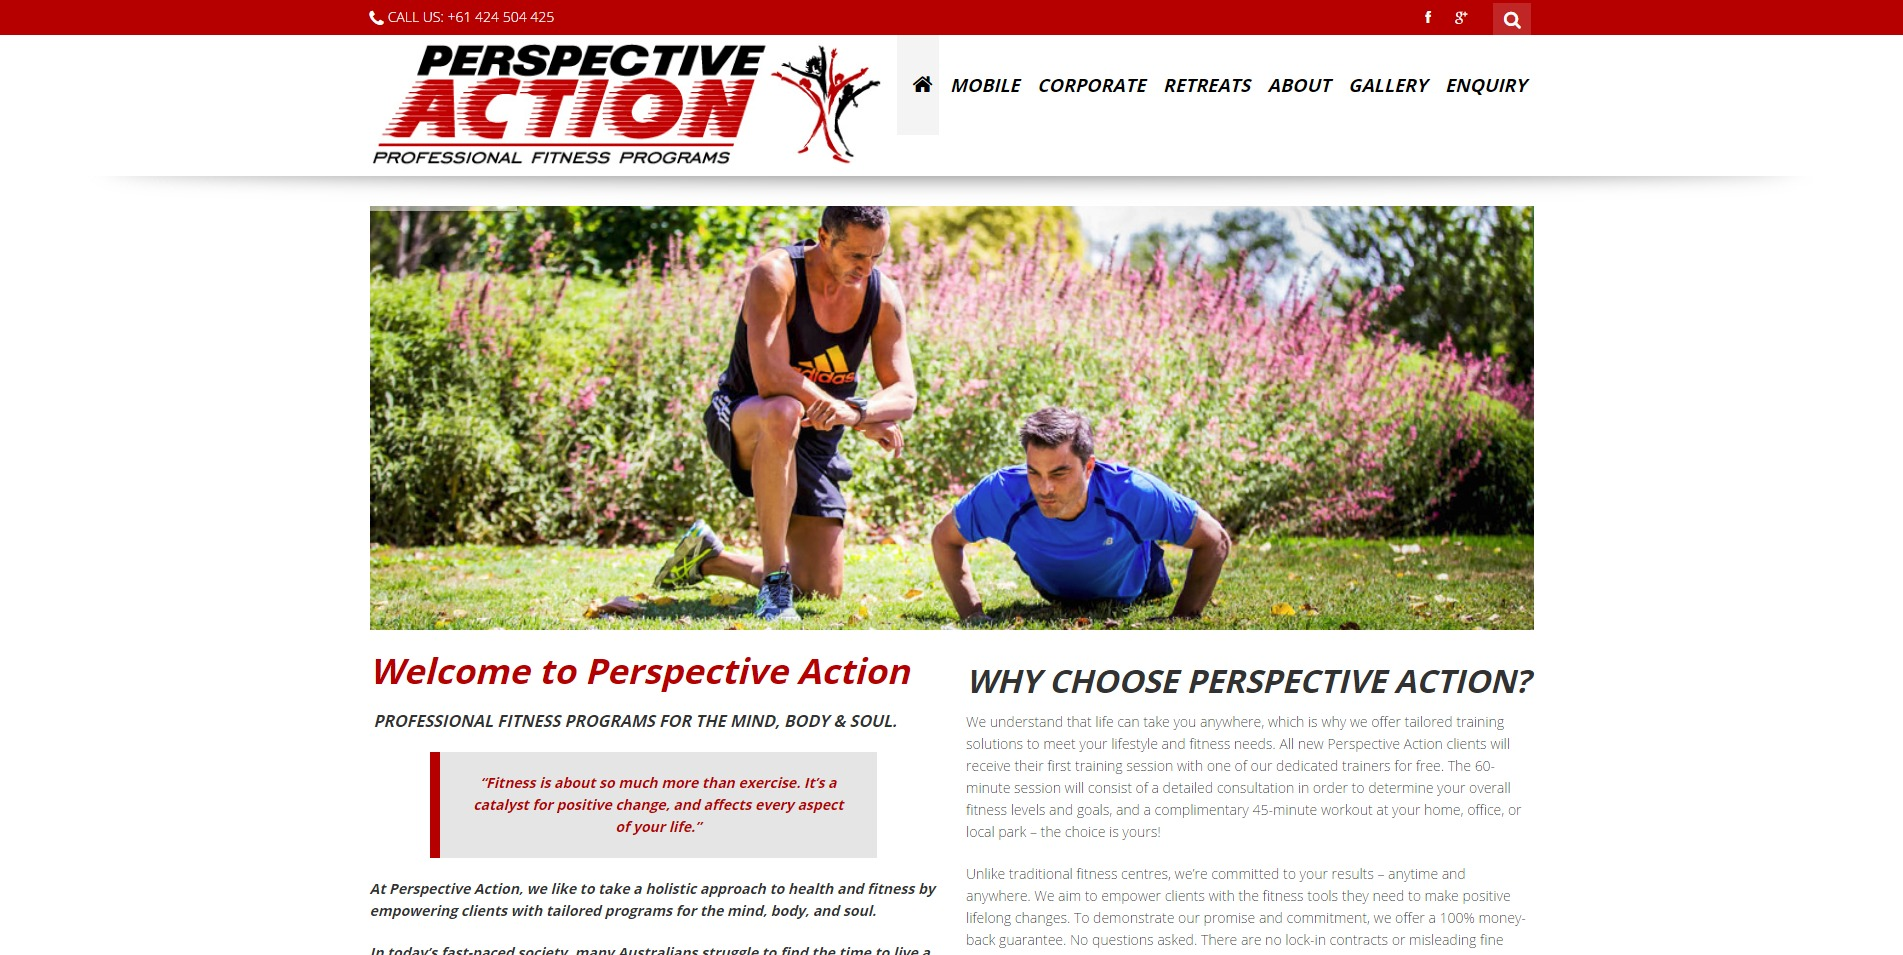 Website for Perspective Action